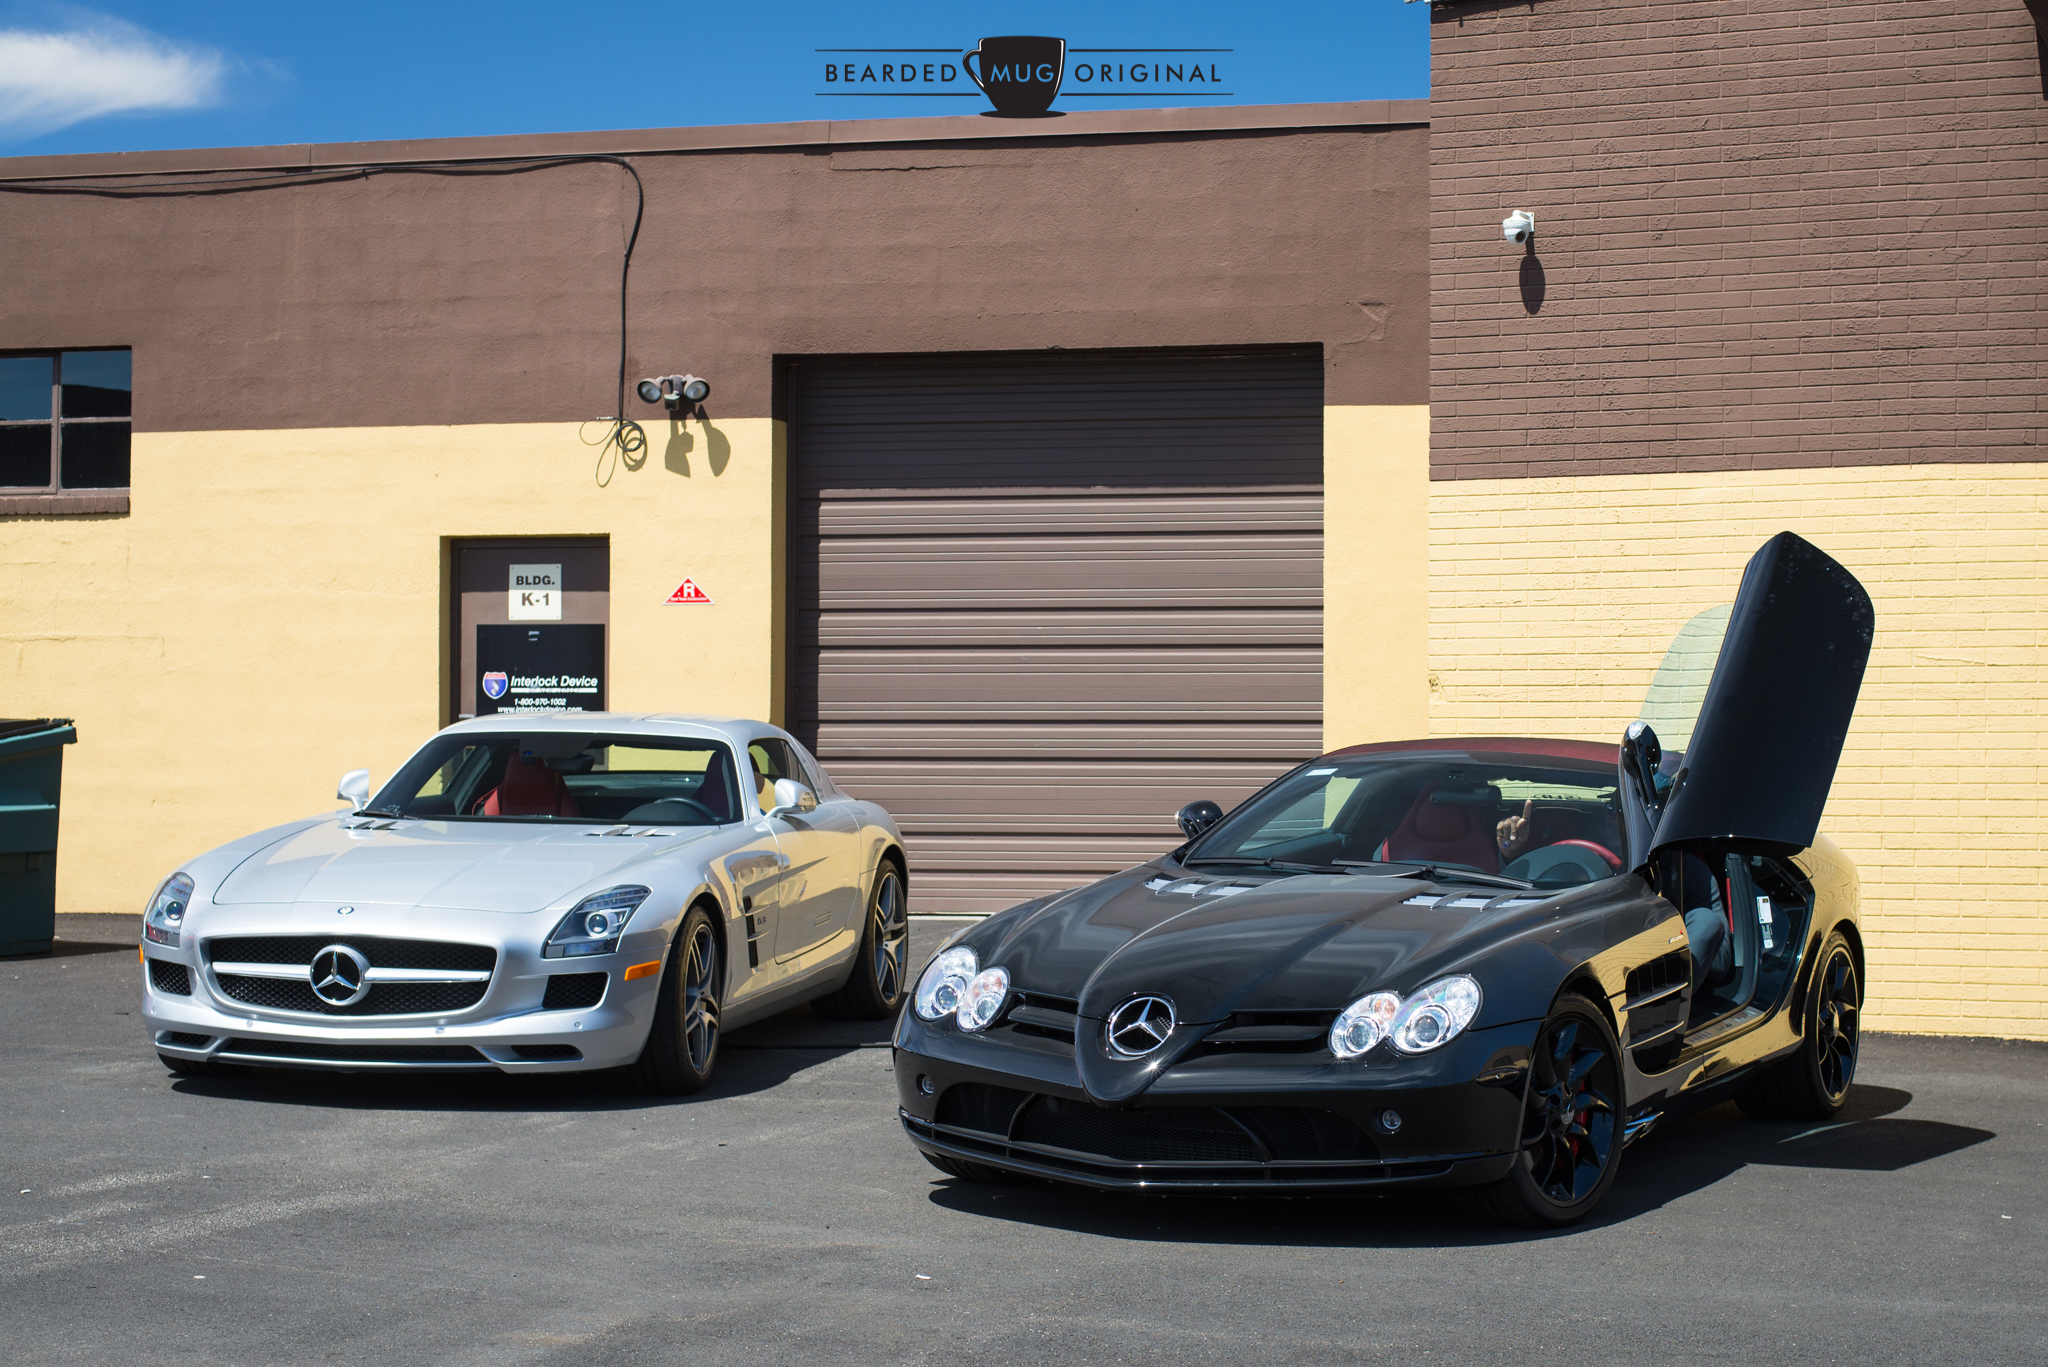 You can't show up in an SLR McLaren, Michael Strahan,and expect people to not take pictures.